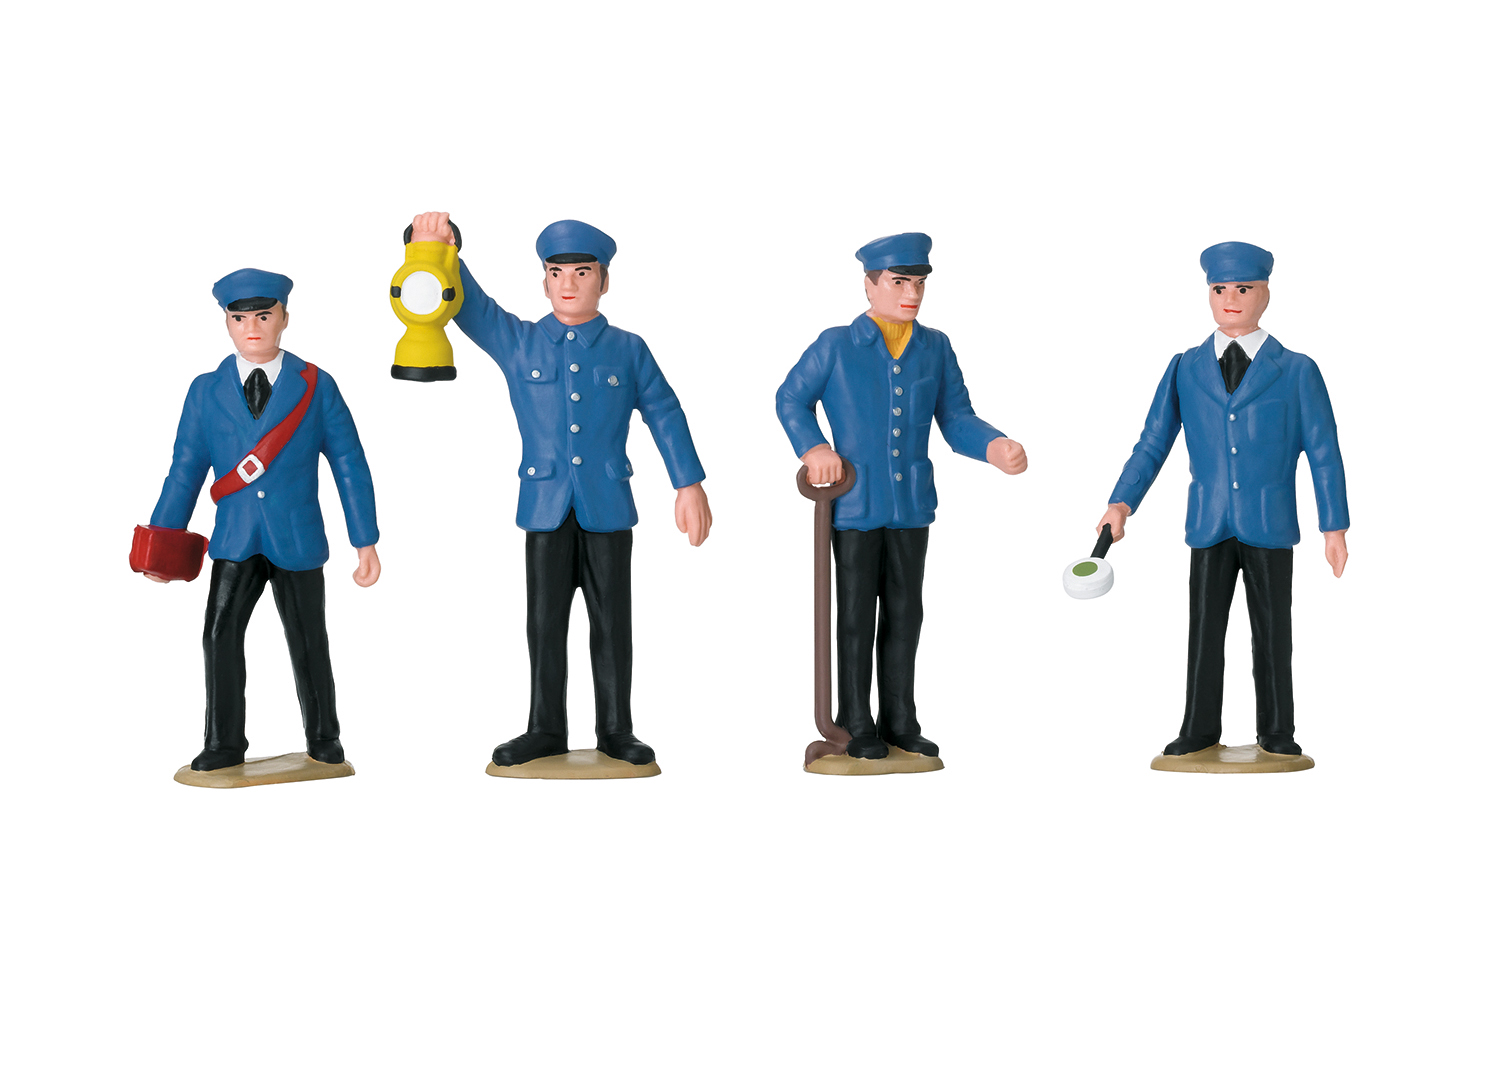 Set of Figures for Railroad Workers in Germany